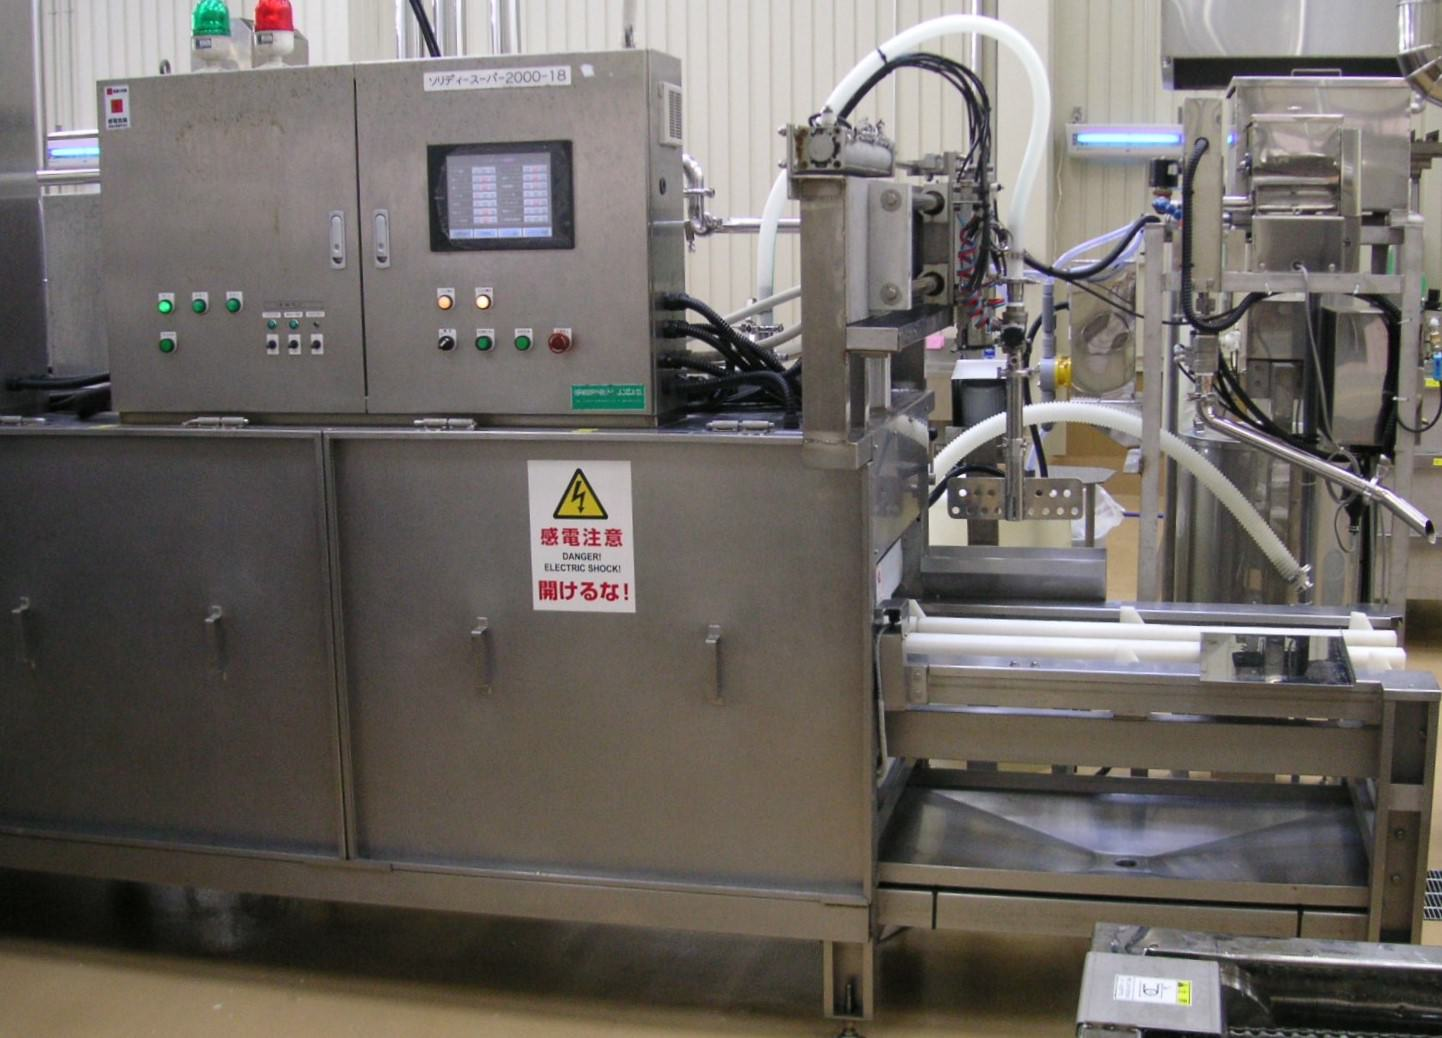 Control Panel and Soybean Milk Feeding Section image.